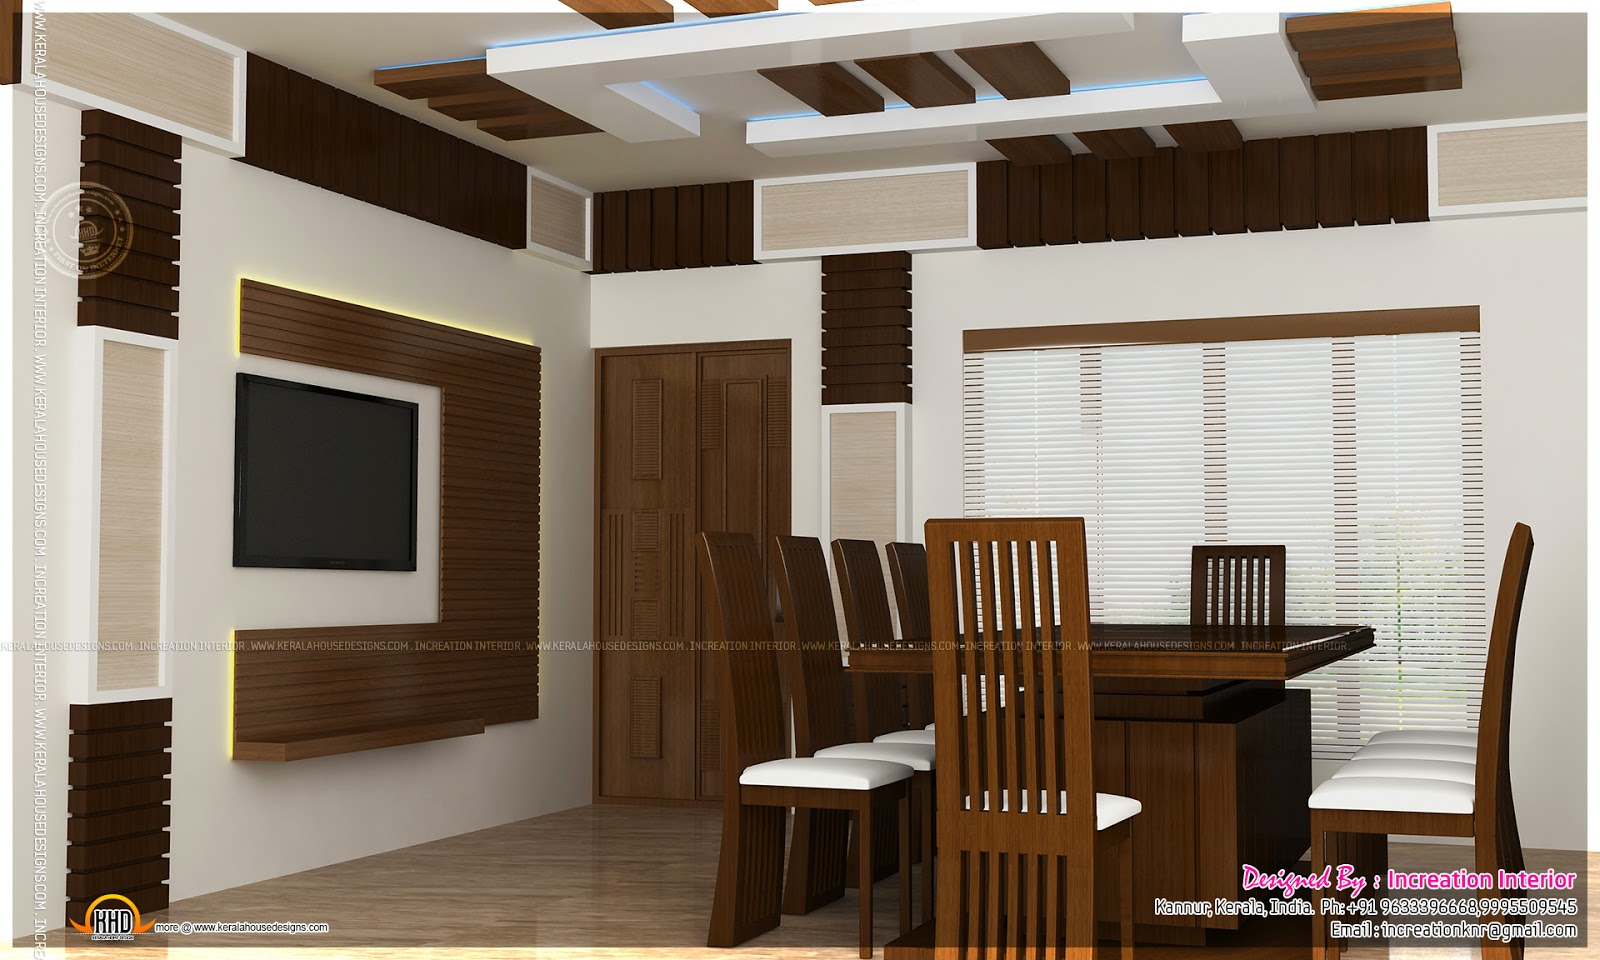 Interior design ideas by increation interior kerala for Interior designs images